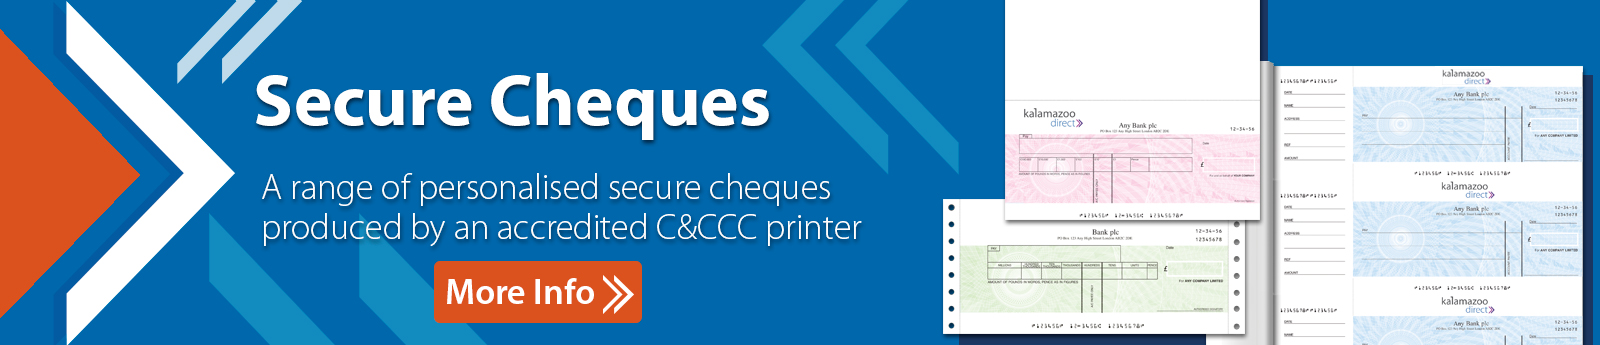 Secure Cheques